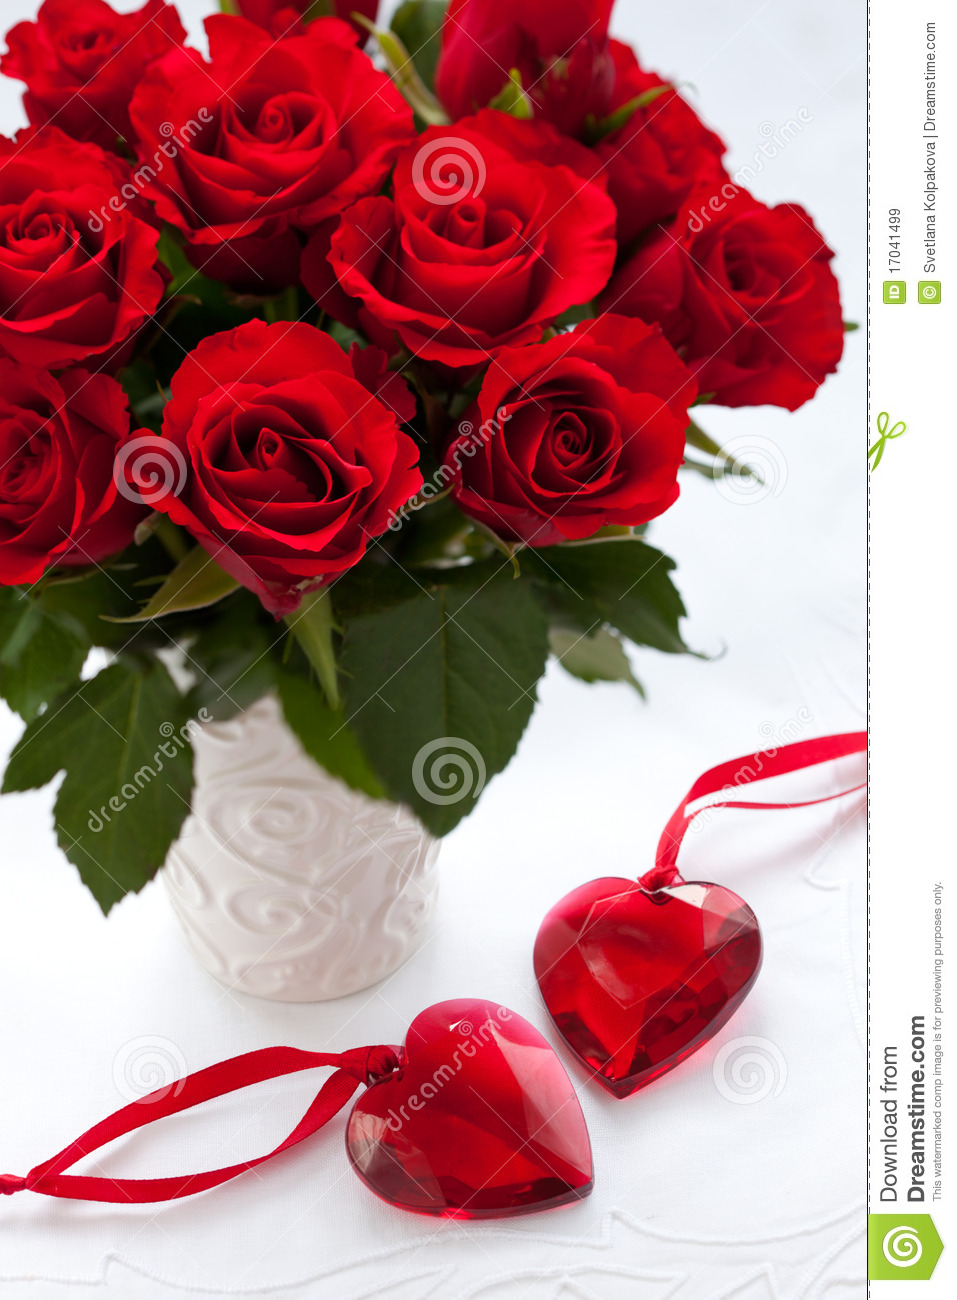 Red Roses And Hearts Royalty Free Stock Images  Image